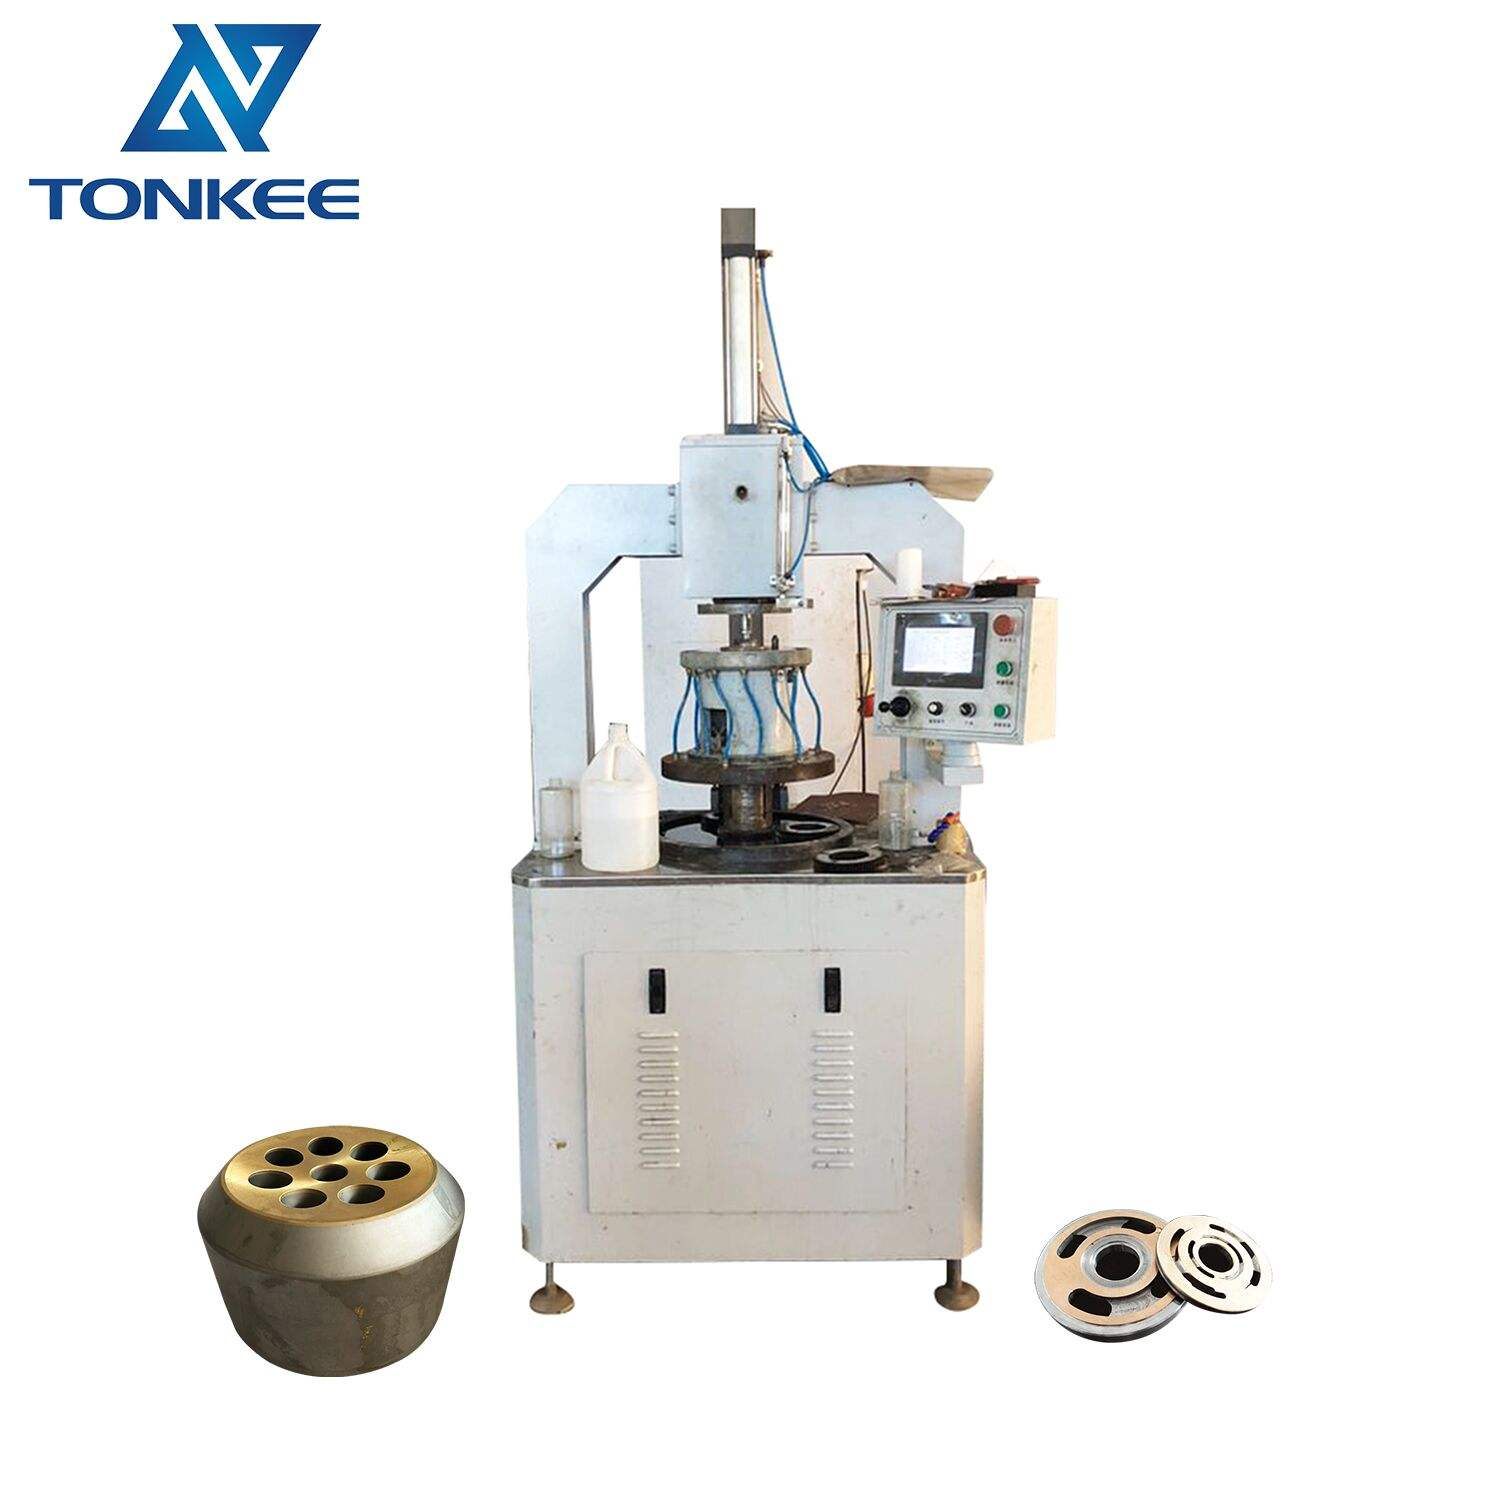 Standard size 9B 13B 16B Double Sided high Precision flat surface grinding System surface grinding machine tool